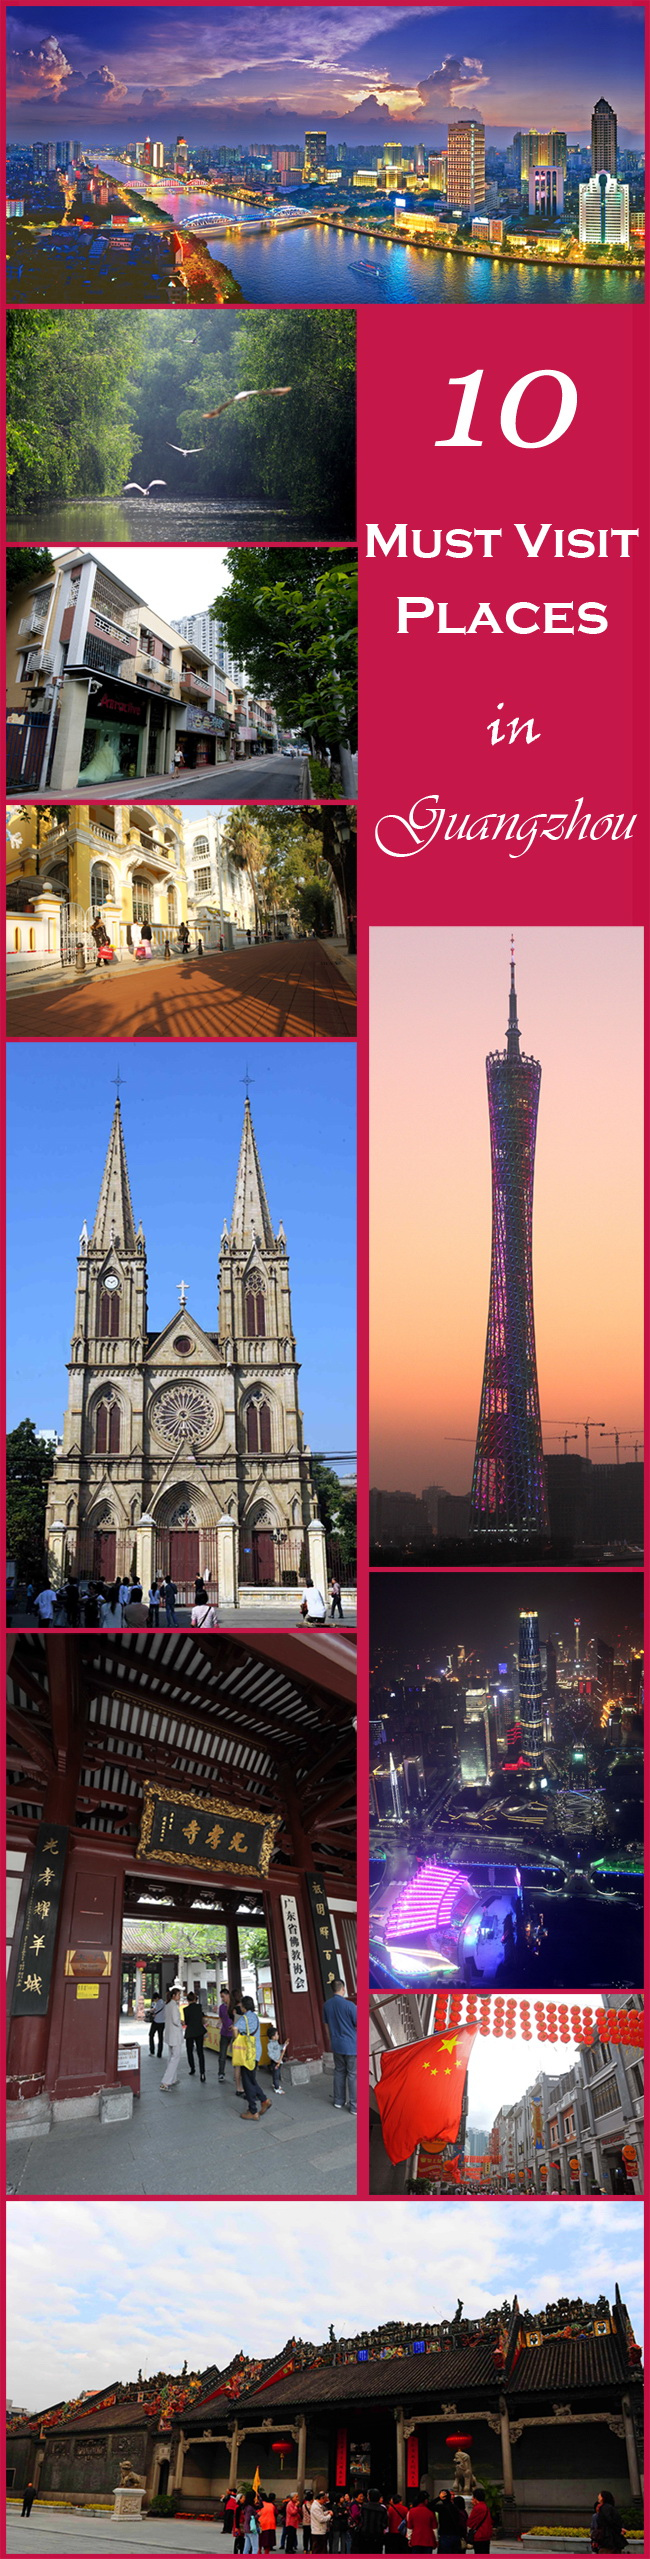 10 must visit places in Guangzhou